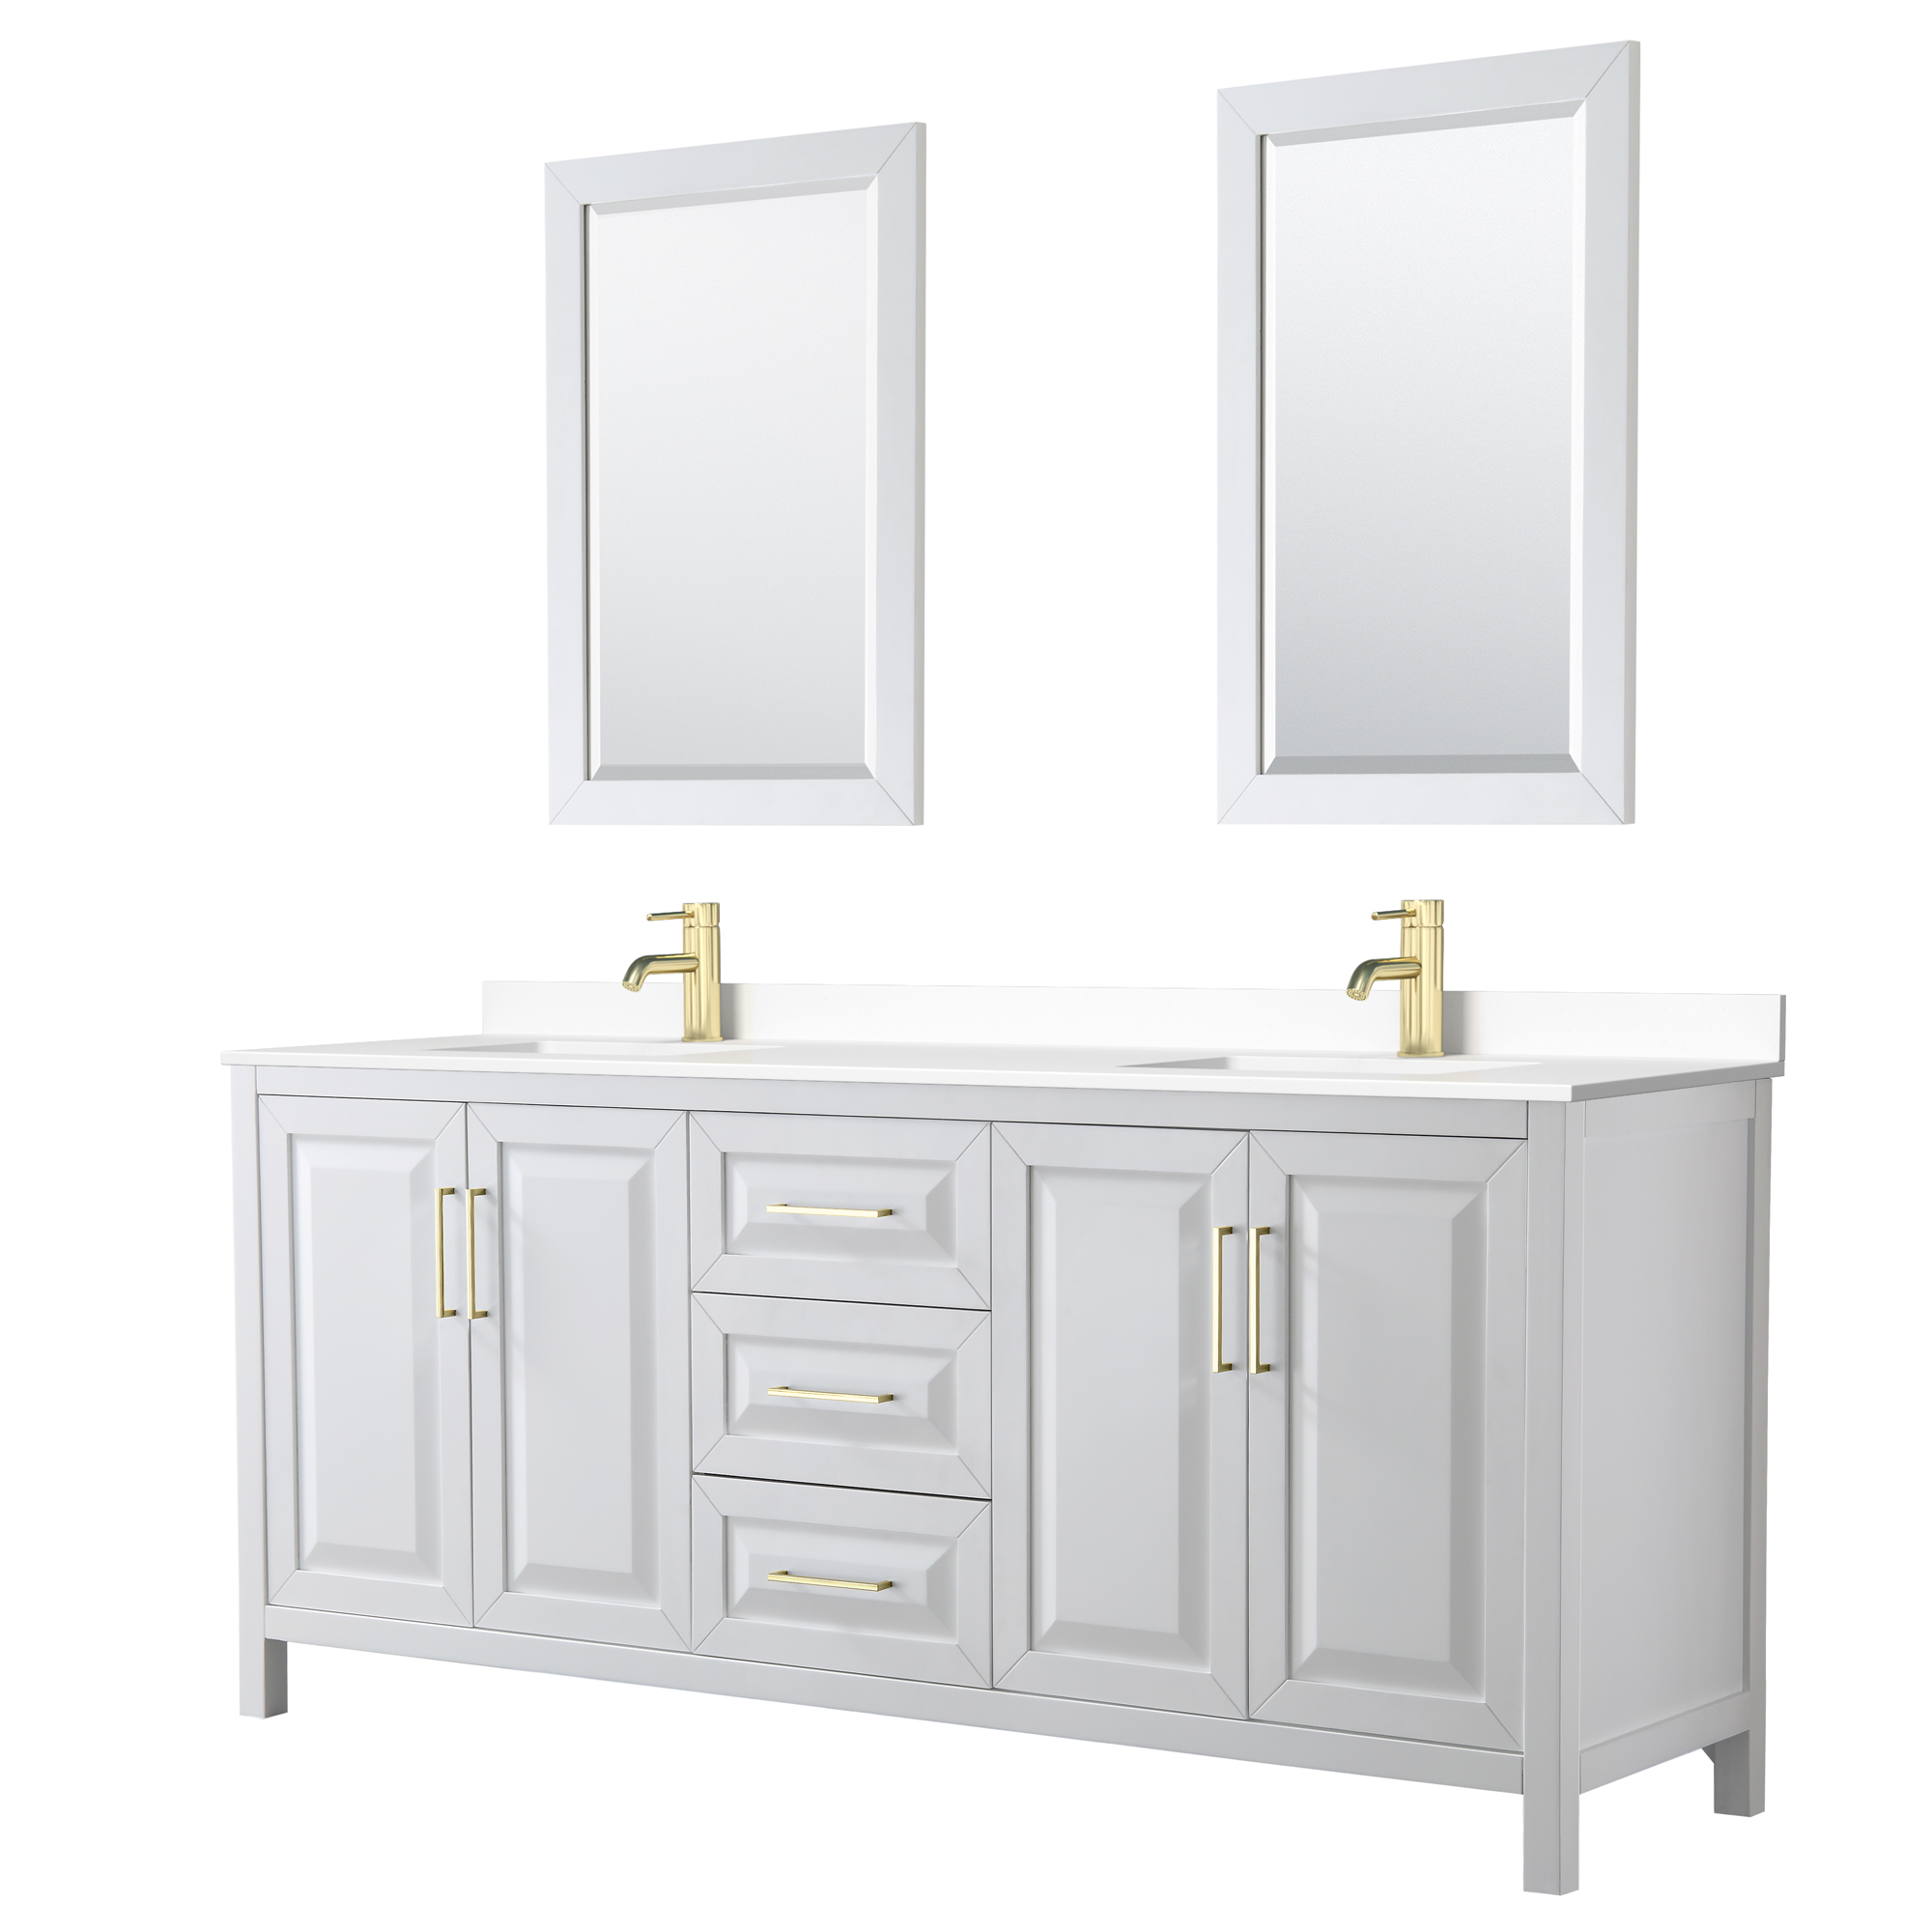 Daria 80 Double Bathroom Vanity White Beautiful Bathroom Furniture For Every Home Wyndham Collection